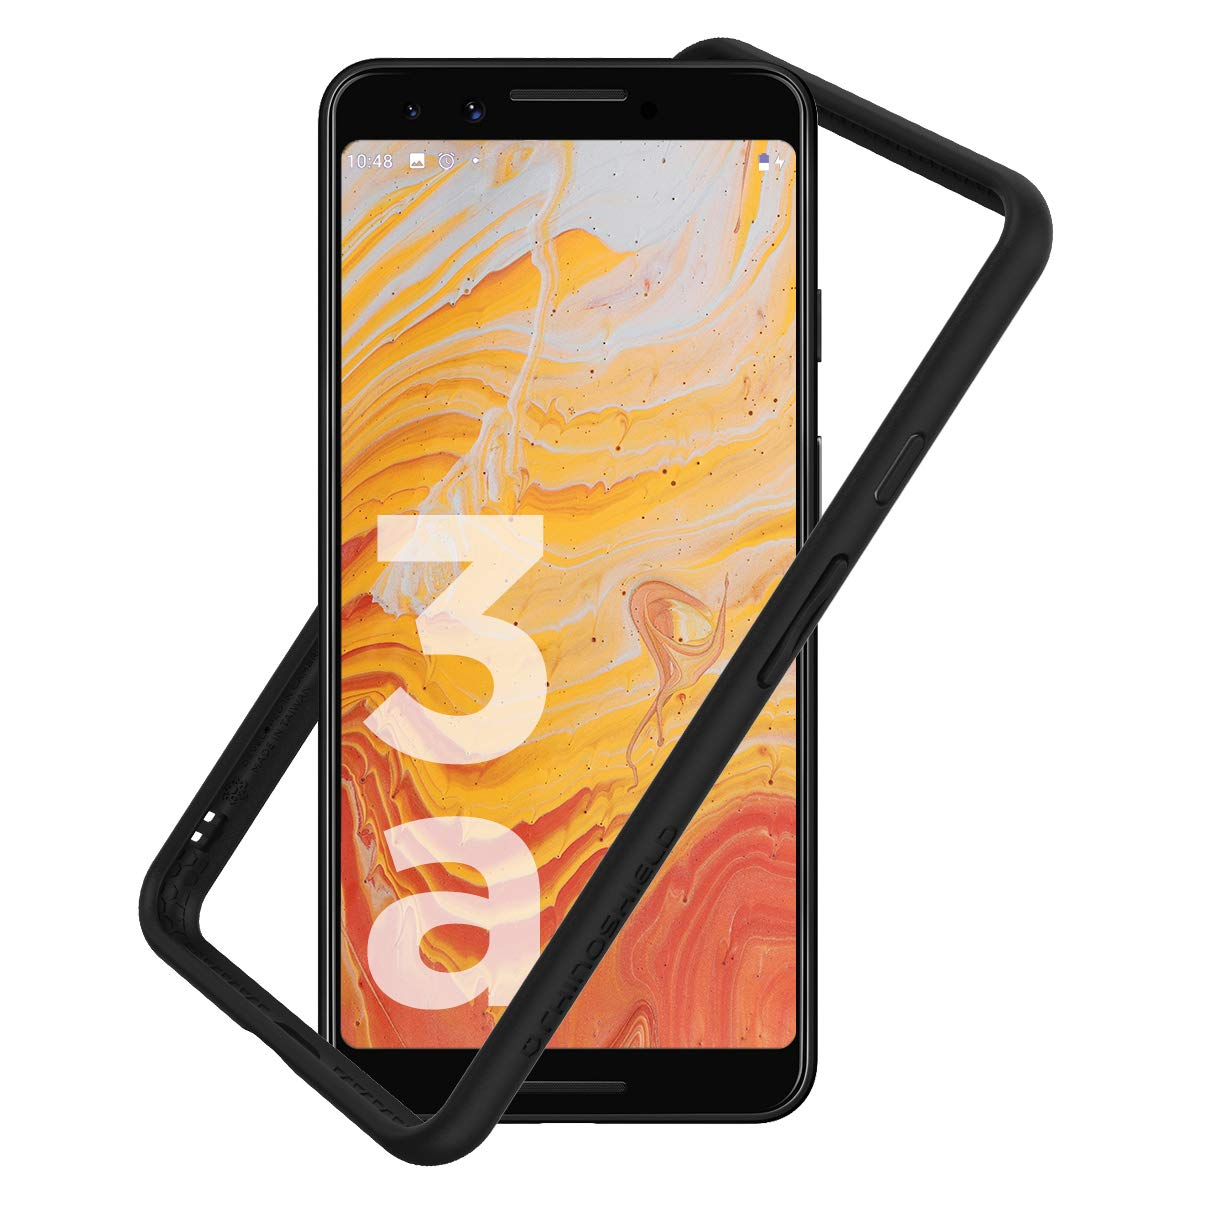 RhinoShield Ultra Protective Bumper Case for Google Pixel 3a CrashGuard, Military Grade Drop Protection for Full Impact, Slim, Scratch Resistant, Black by RhinoShield